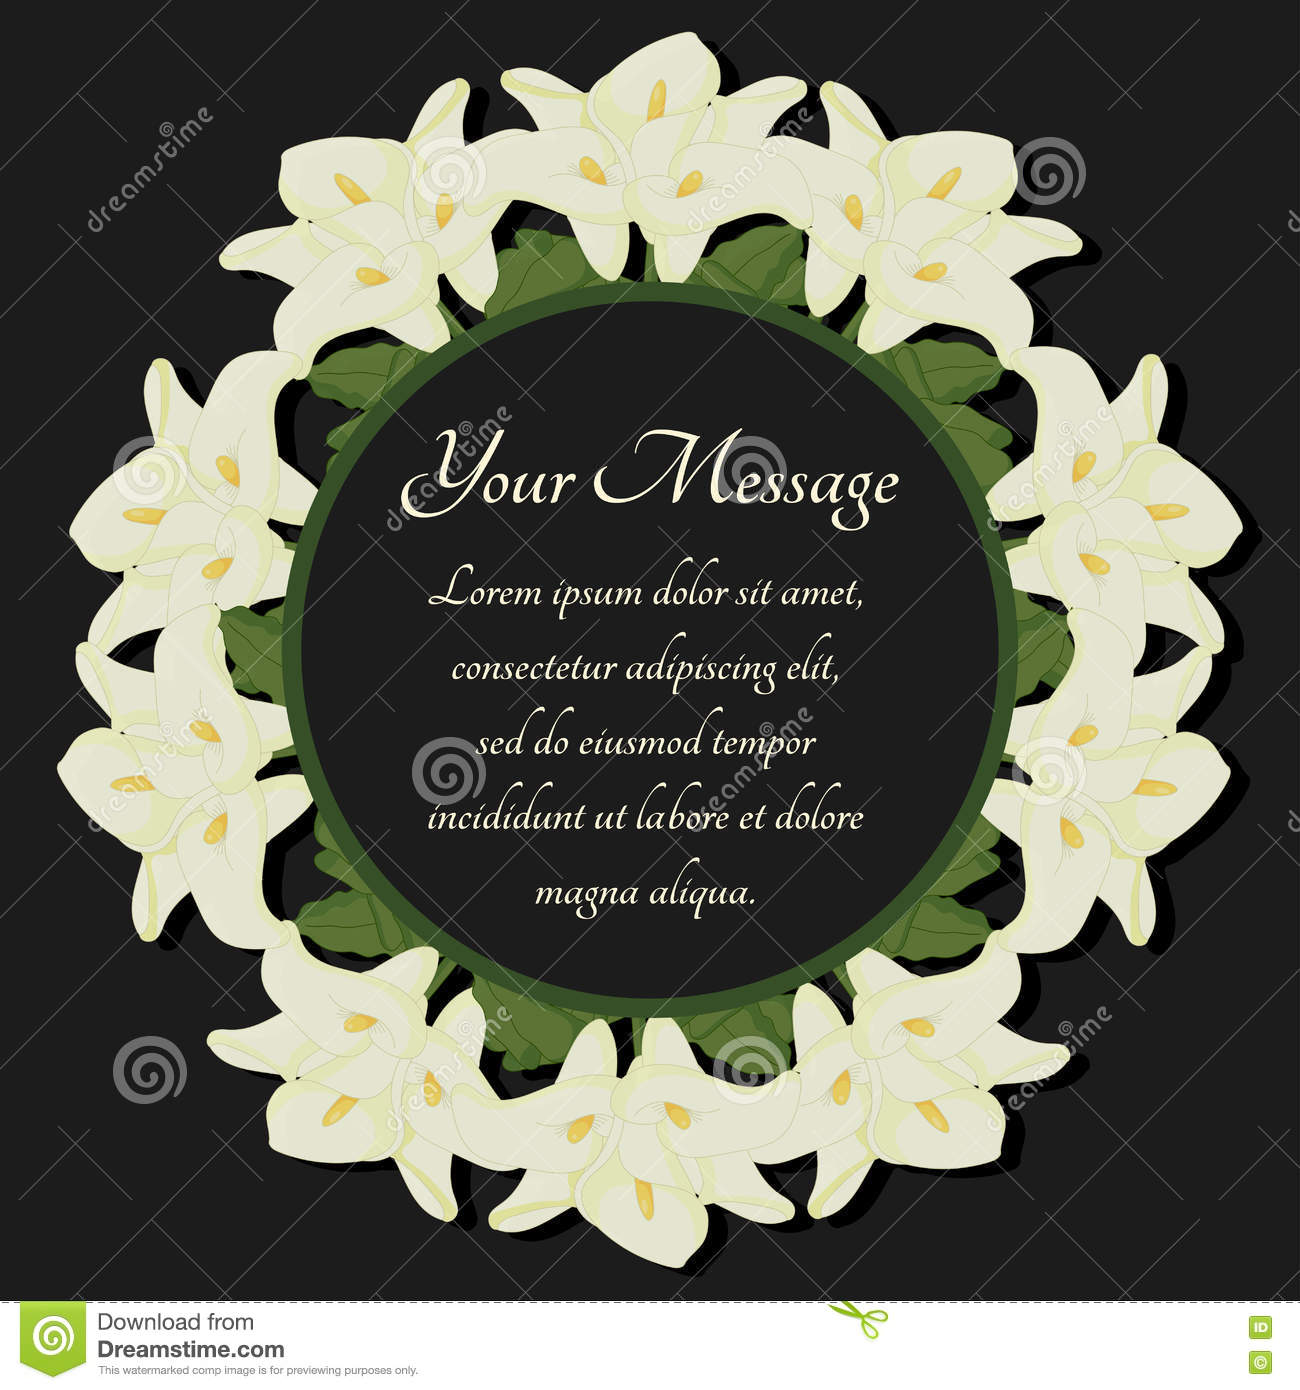 Funeral frame mourning illustration with flowers calla lilies funeral frame mourning illustration with flowers calla lilies kristyandbryce Images